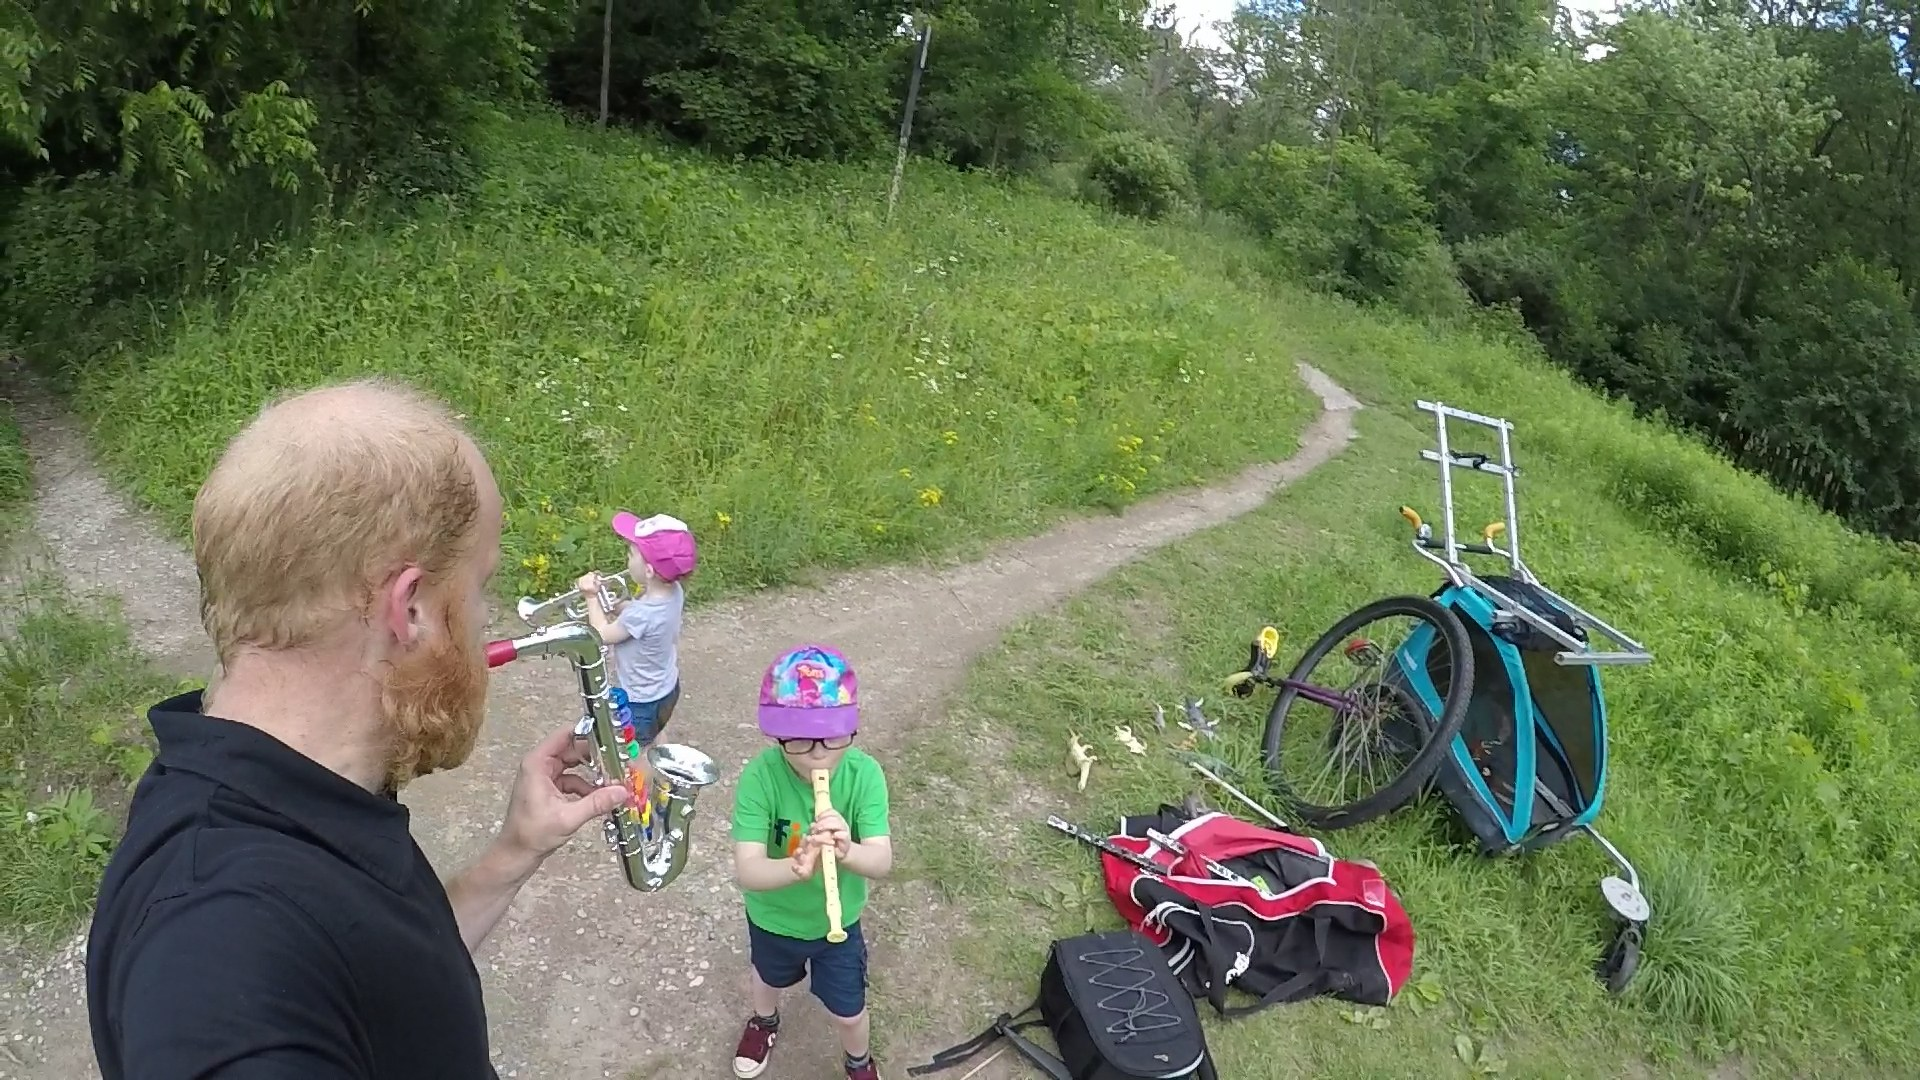 unicycle stroller in the woods